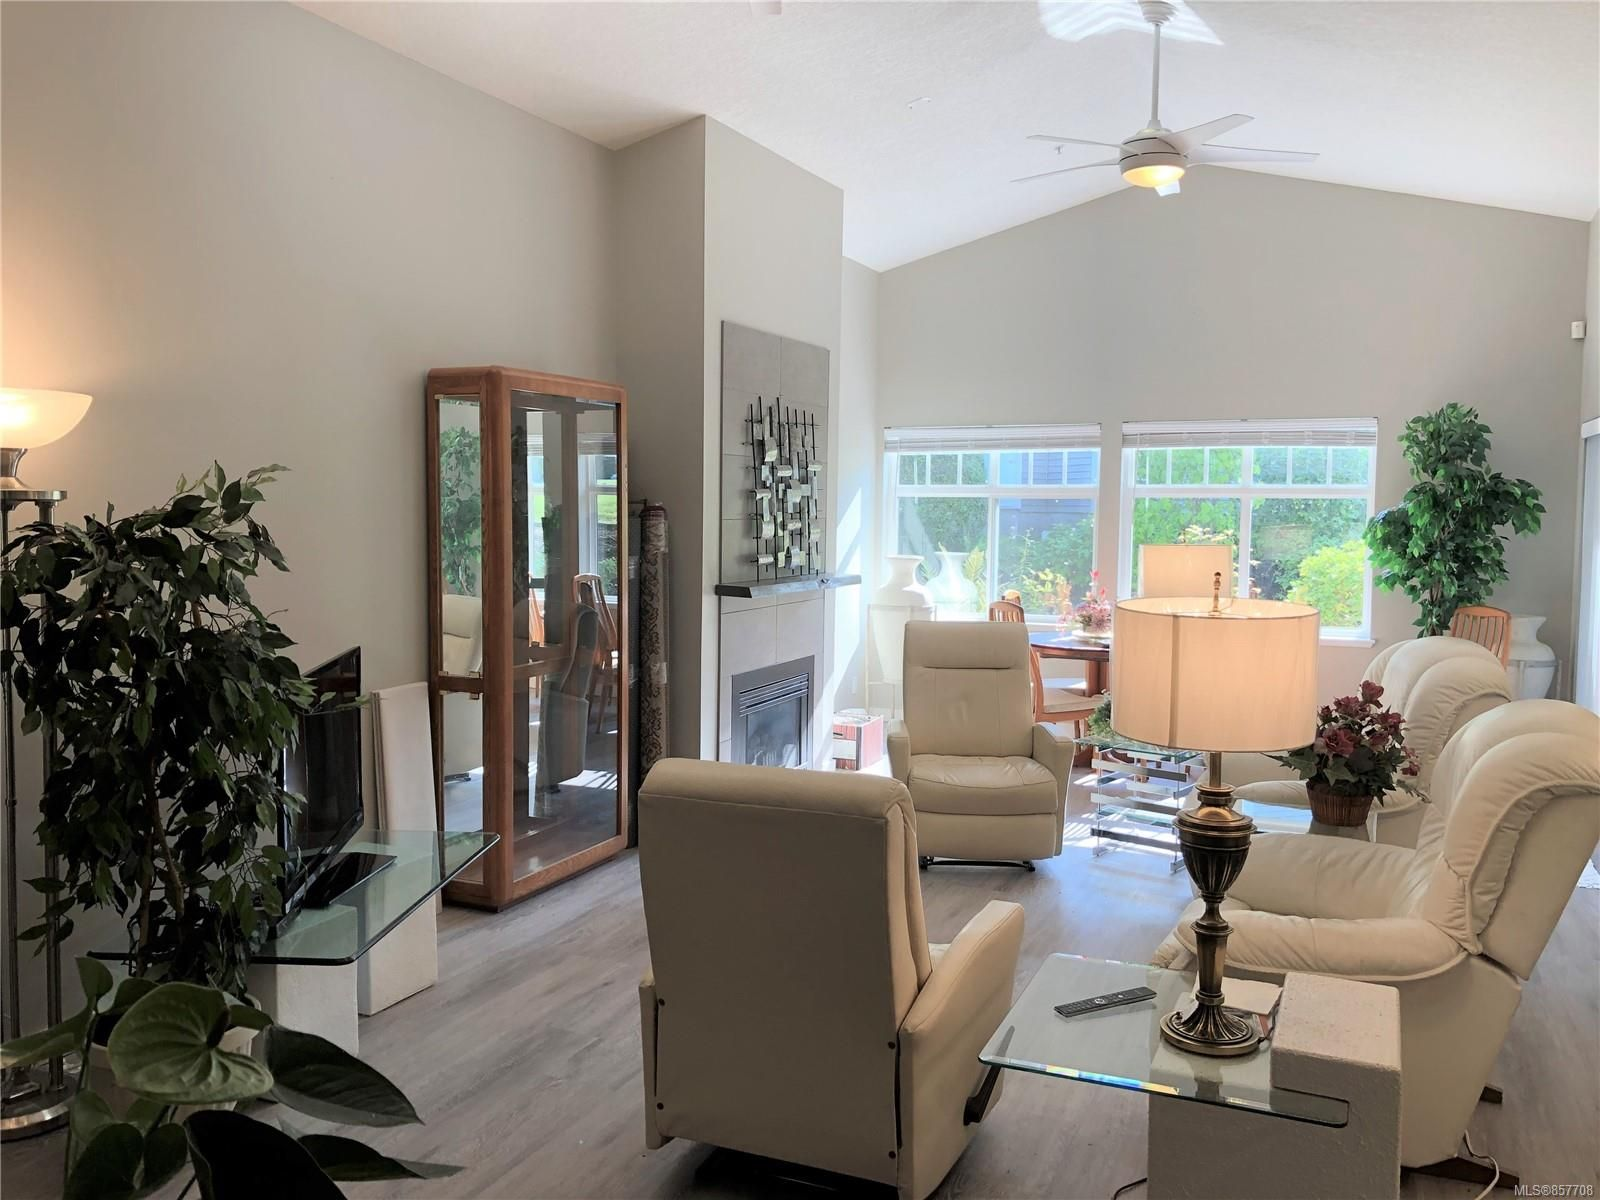 Photo 5: Photos: 6151 Bellflower Way in : Na North Nanaimo Row/Townhouse for sale (Nanaimo)  : MLS®# 857708